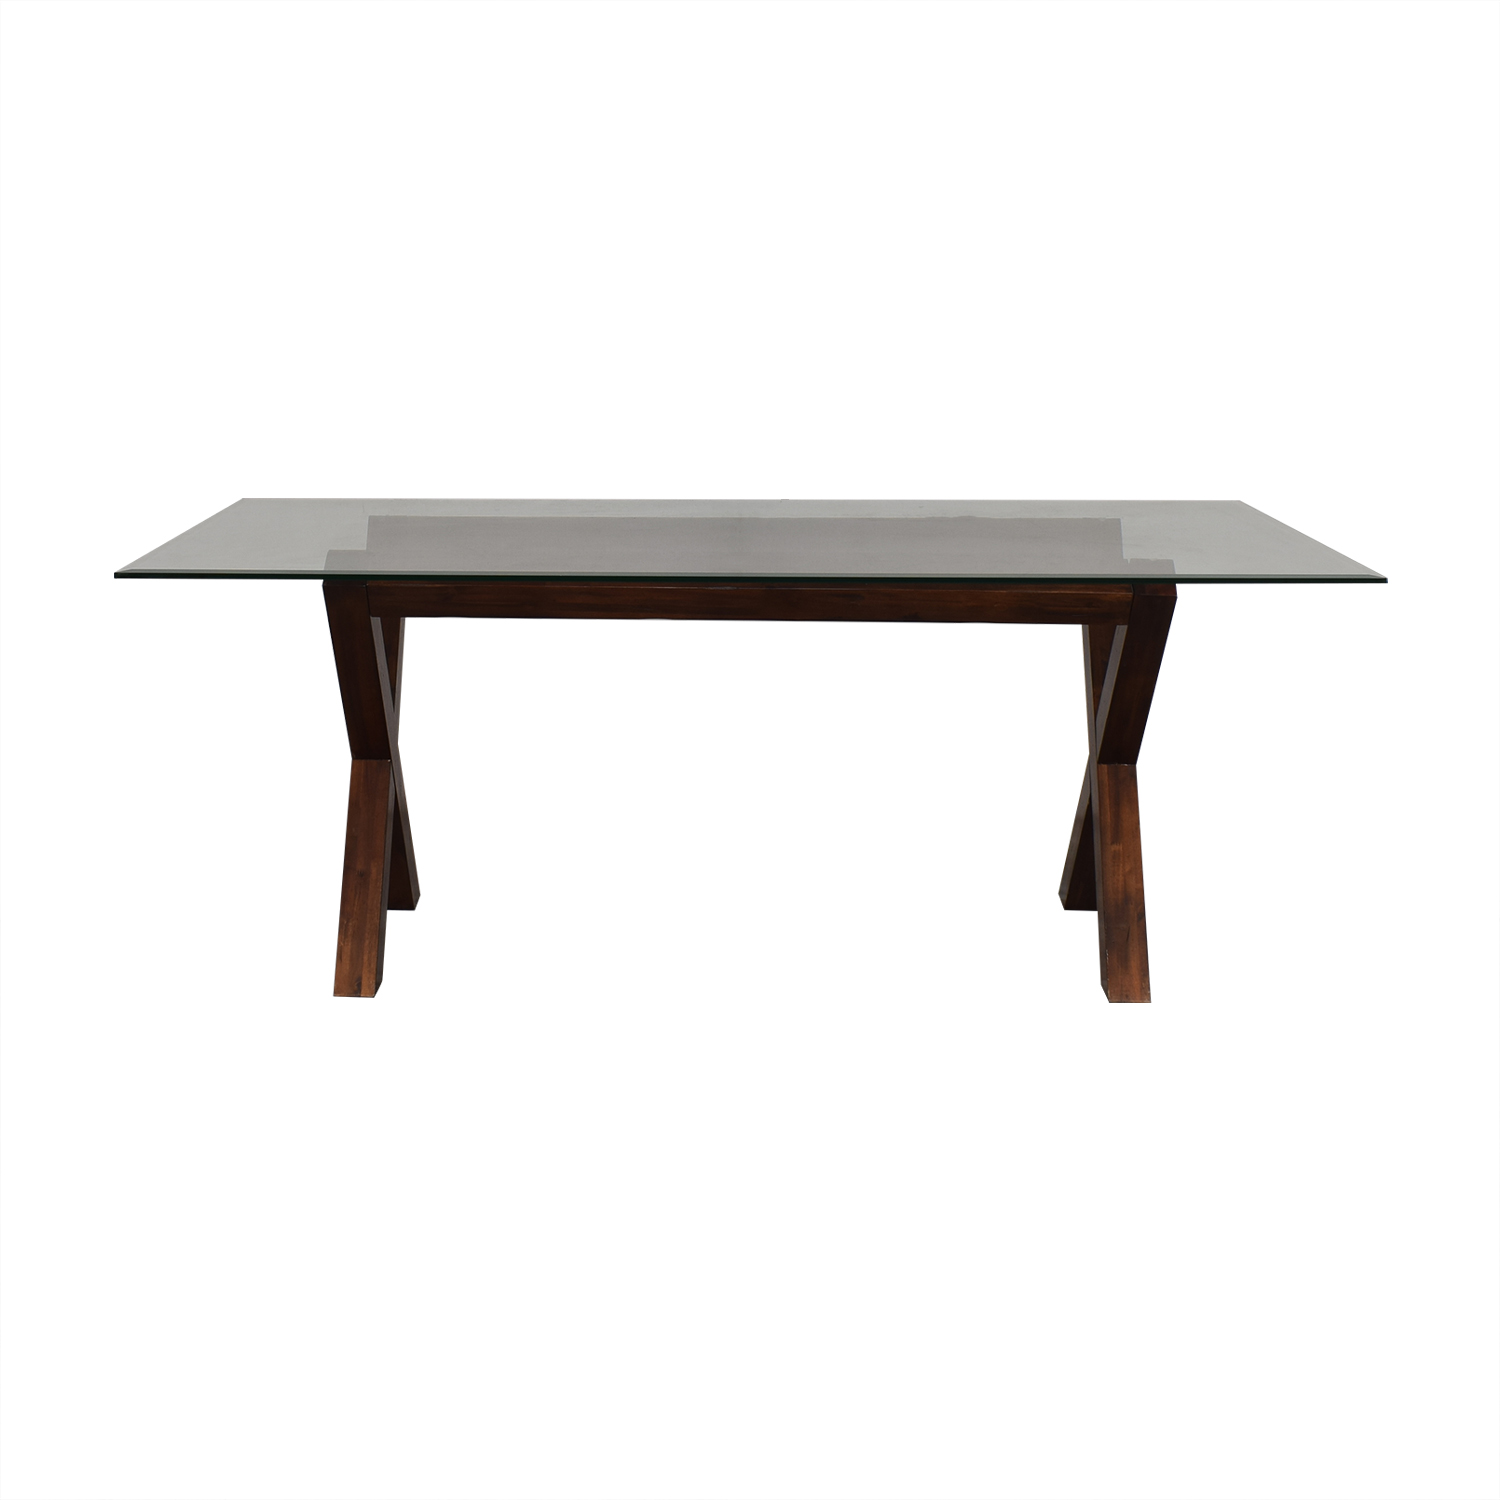 West Elm West Elm Transparent Dining Table price